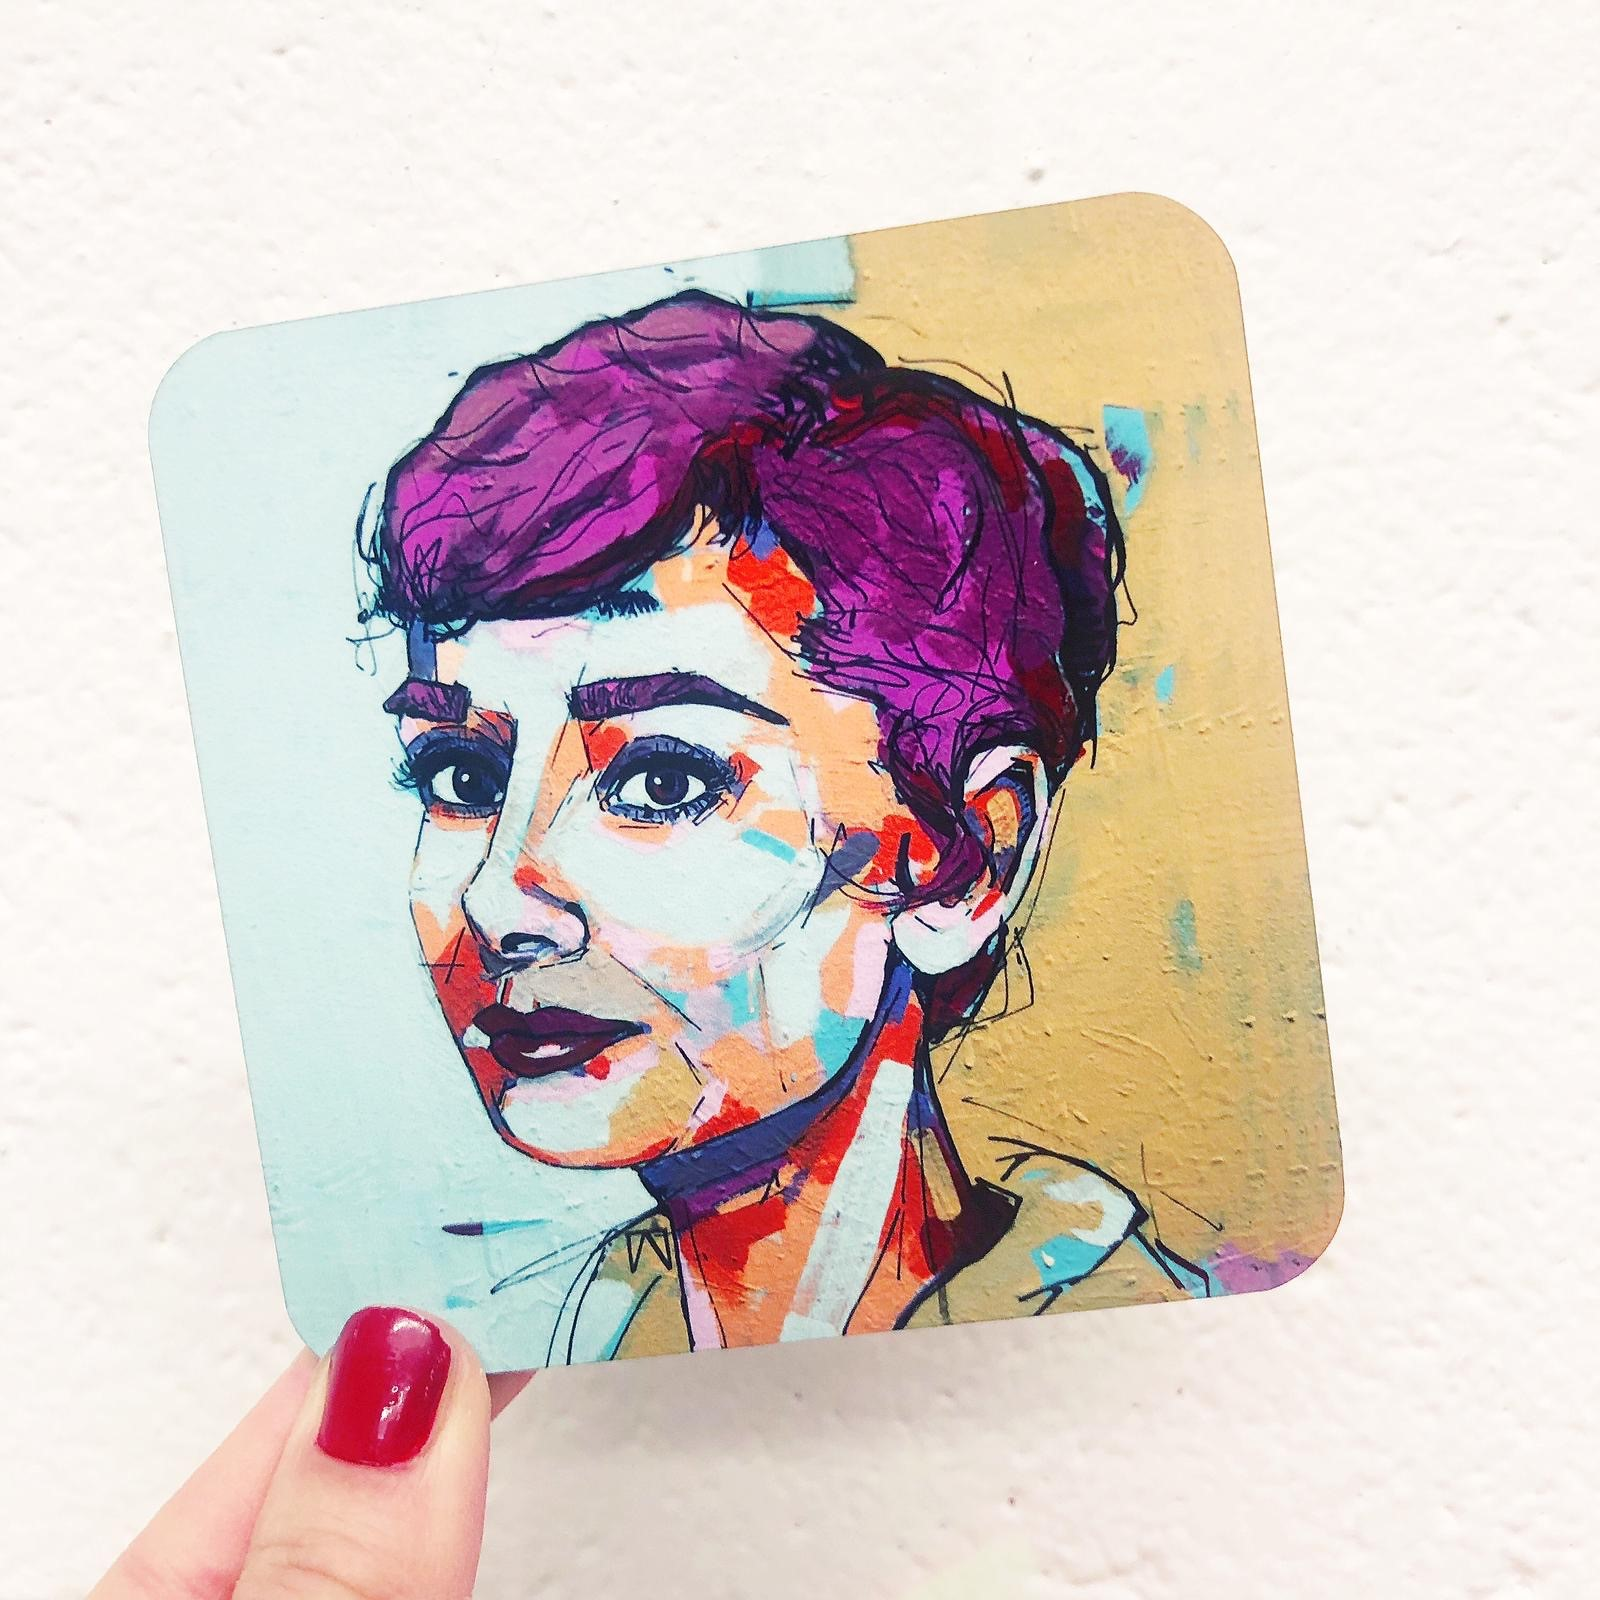 Personalised photo coasters: 'Punk Audrey' Audrey Hepburn by designer Laura Selevos